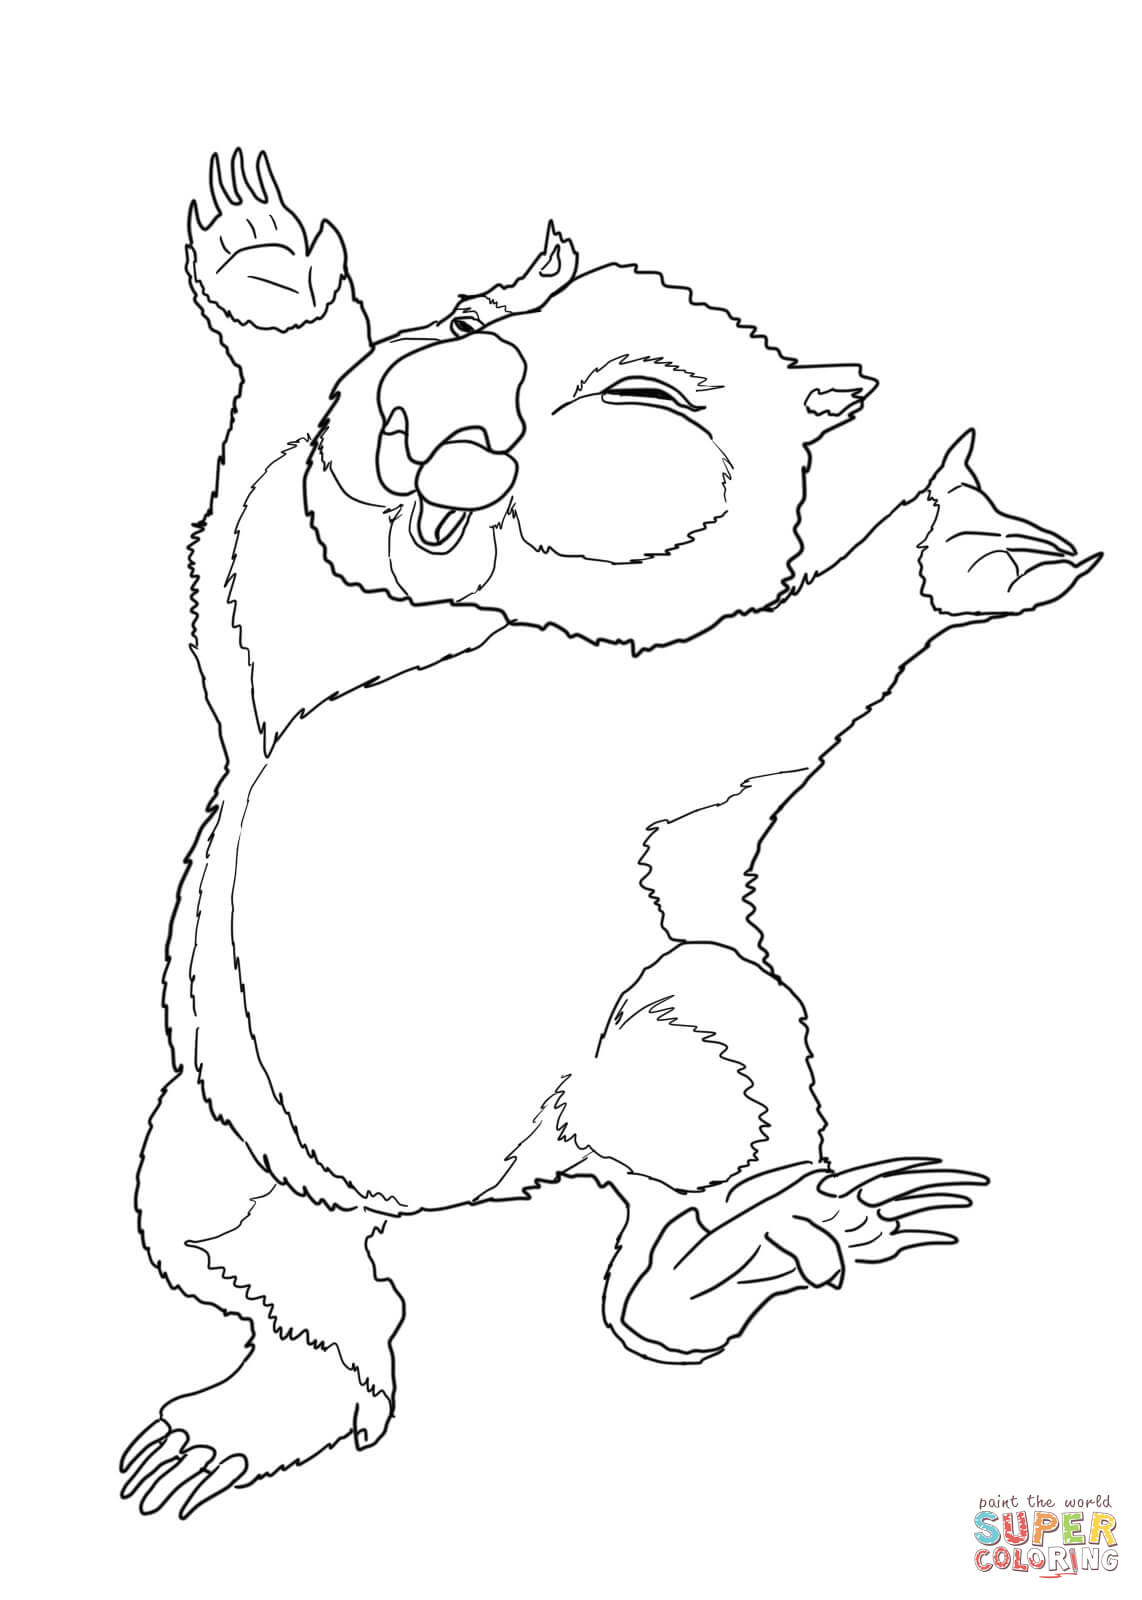 wombat colouring wombat coloring page wombat colouring